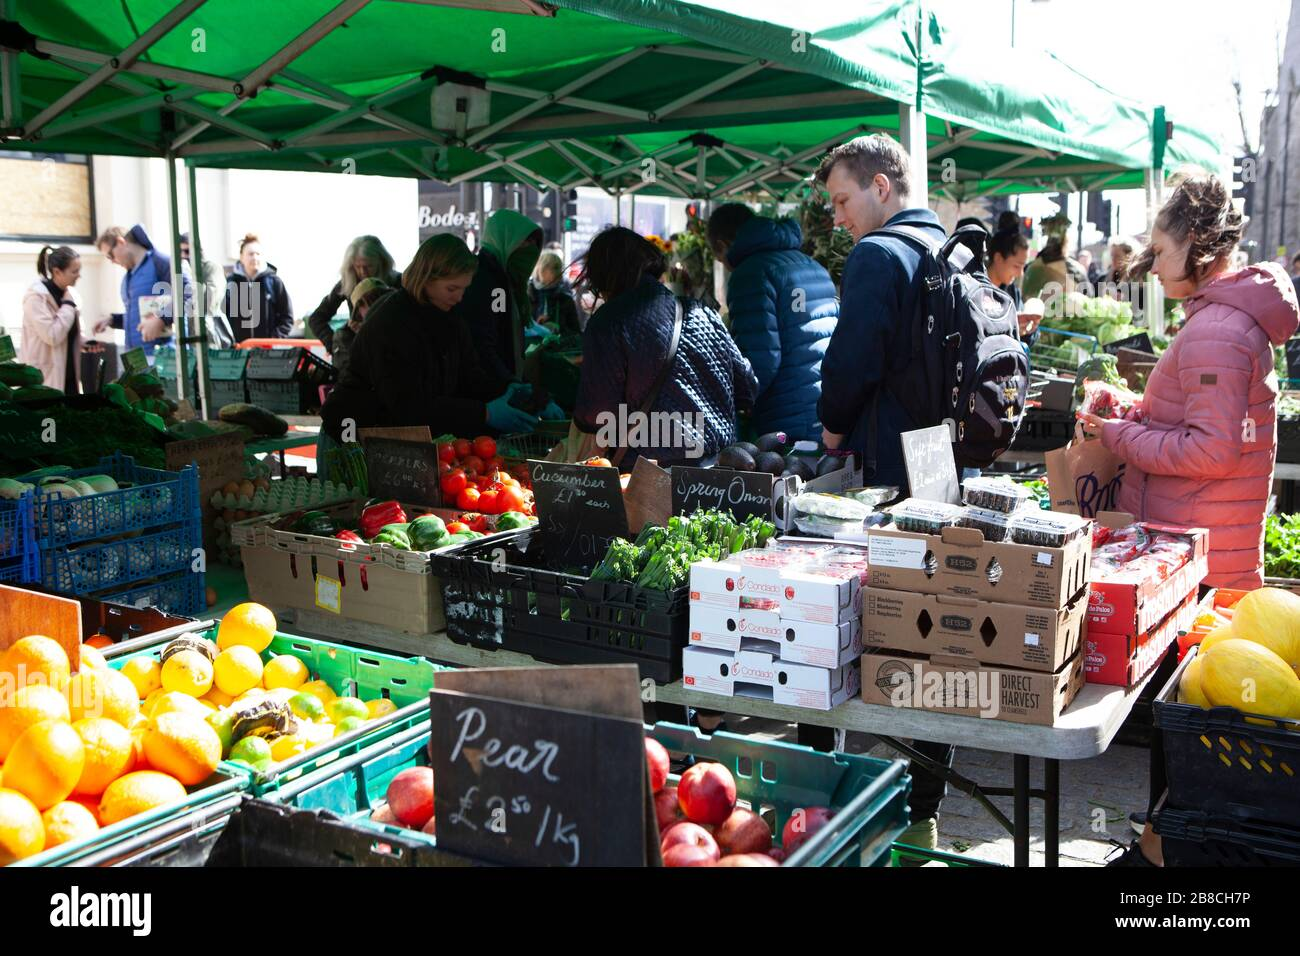 London, UK. 21st March 2020.  at Venn Street in Clapham shoppers appreciate fresh fruit and vegetables available at the weekly Saturday market. However, very few wore face masks or observed social distancing advice. Credit: Anna Watson/Alamy Live News Stock Photo